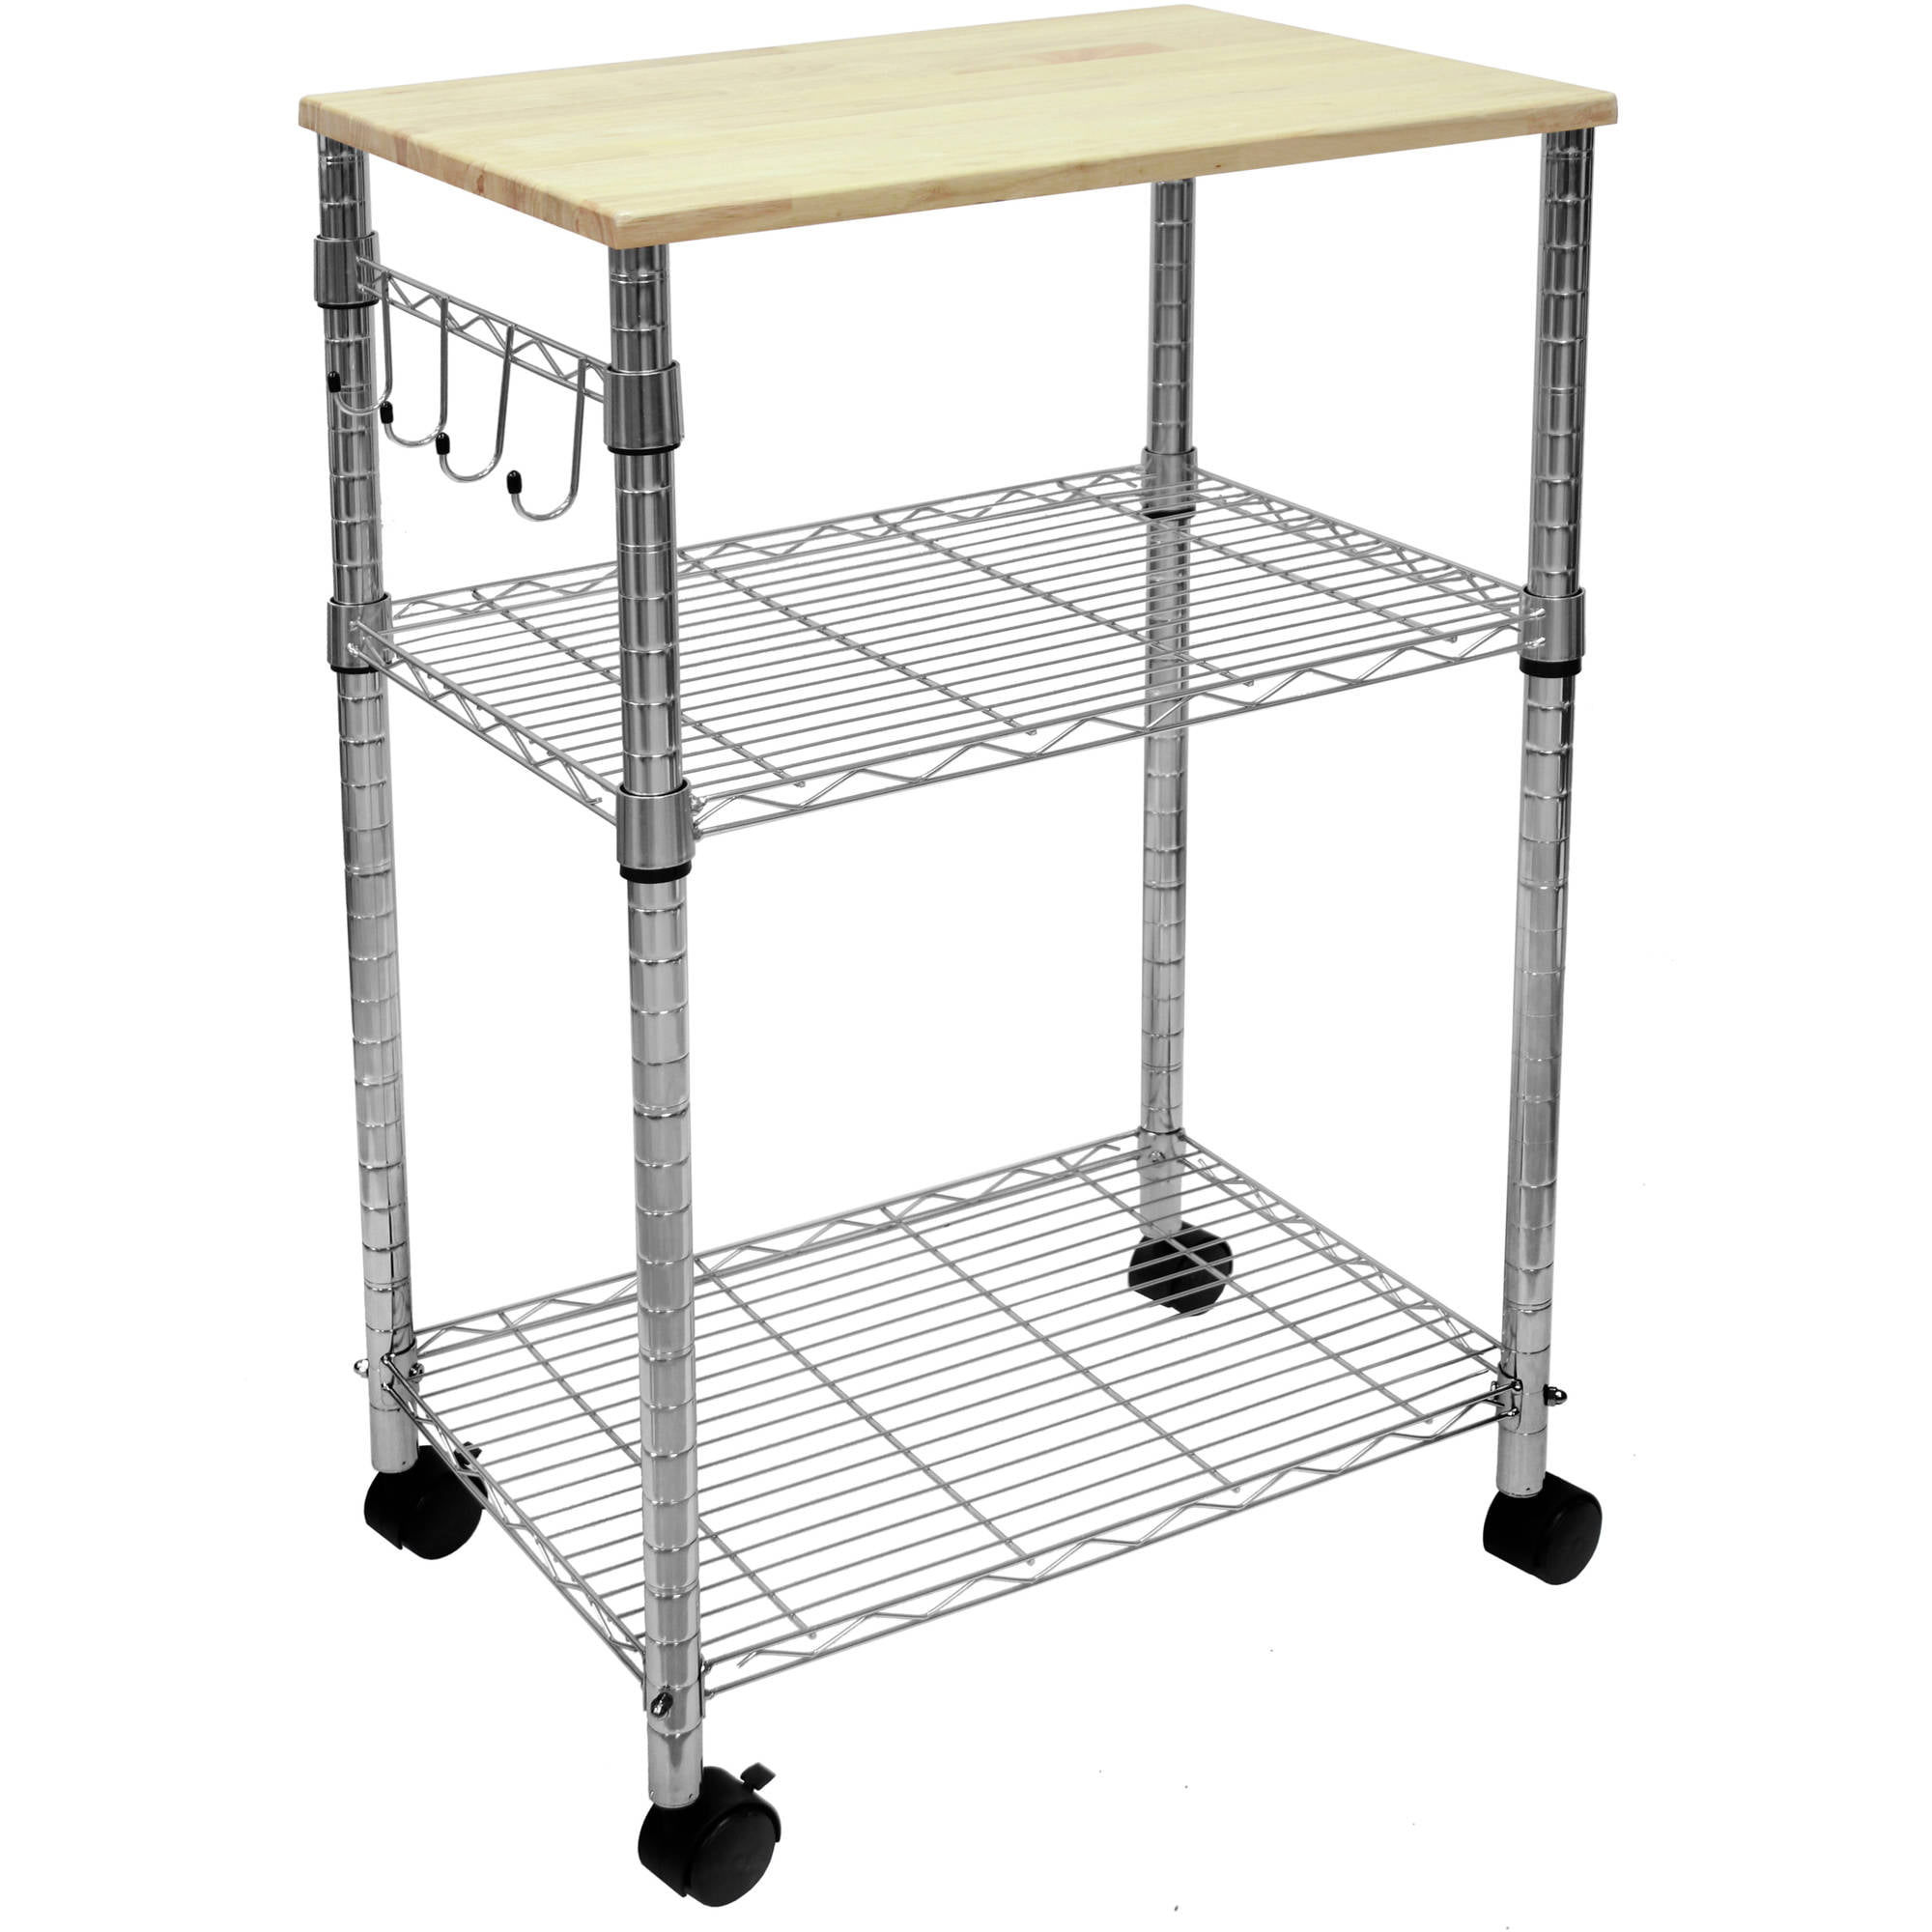 Great Mainstays Multi Purpose Kitchen Cart, Multiple Colors   Walmart.com